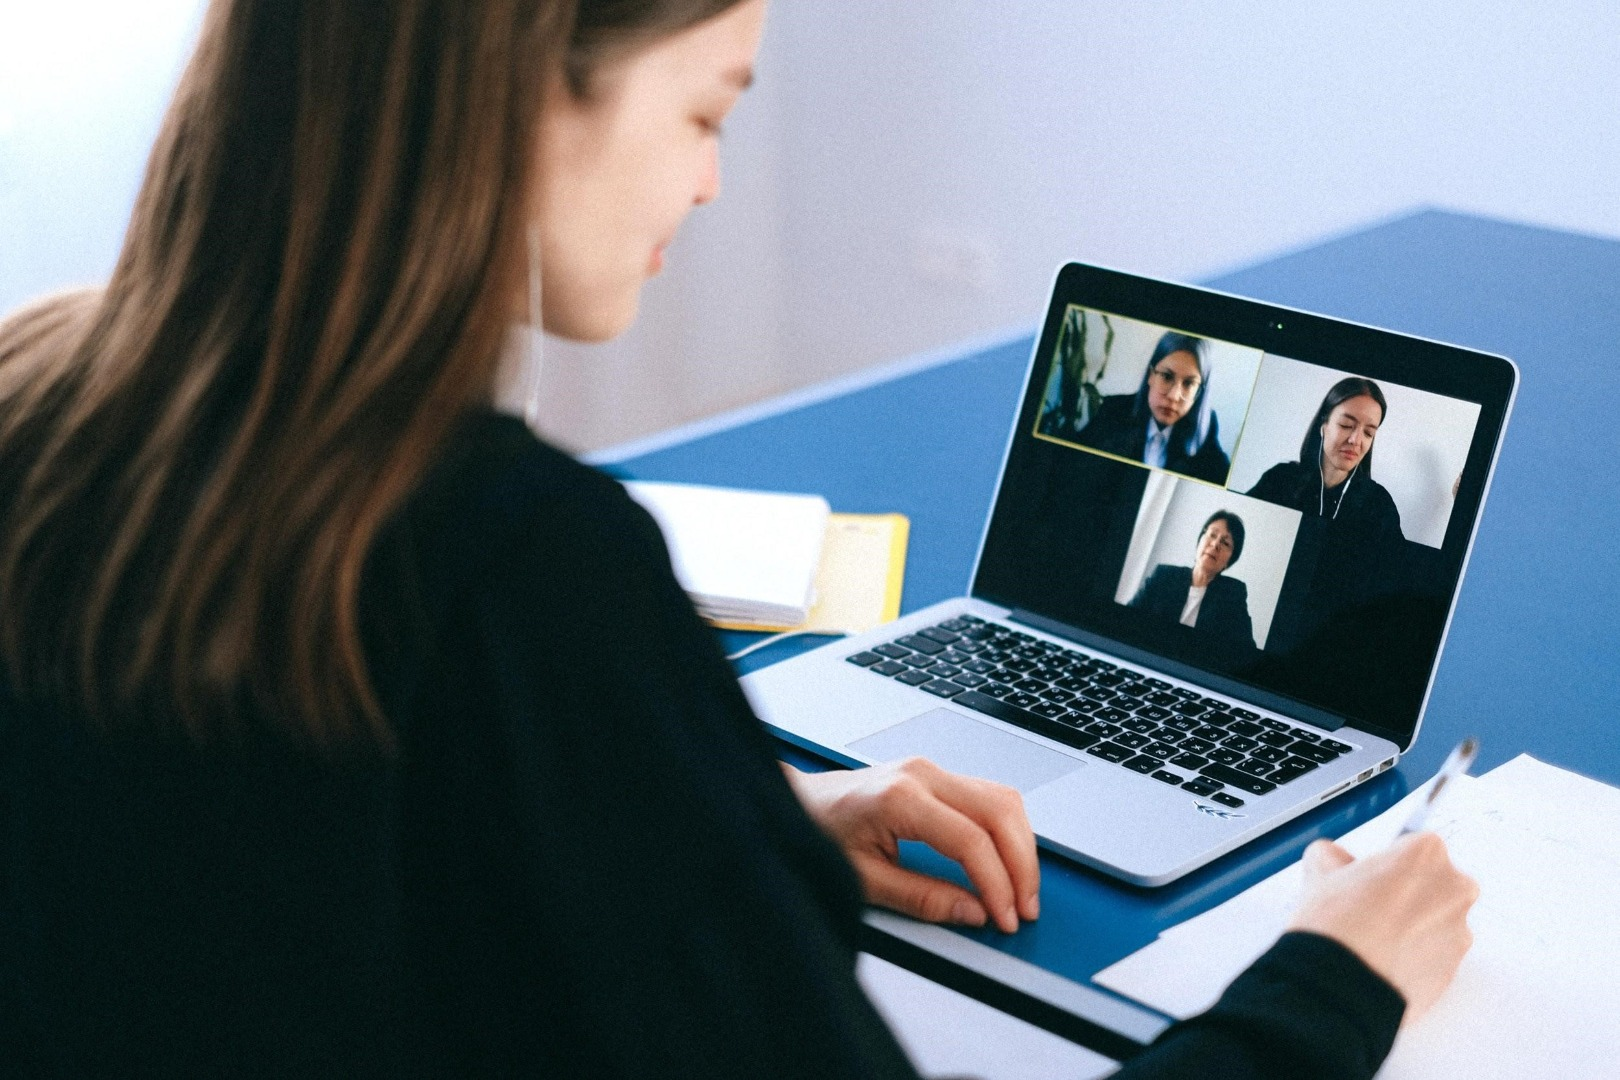 woman talking to colleagues via video call on a laptop